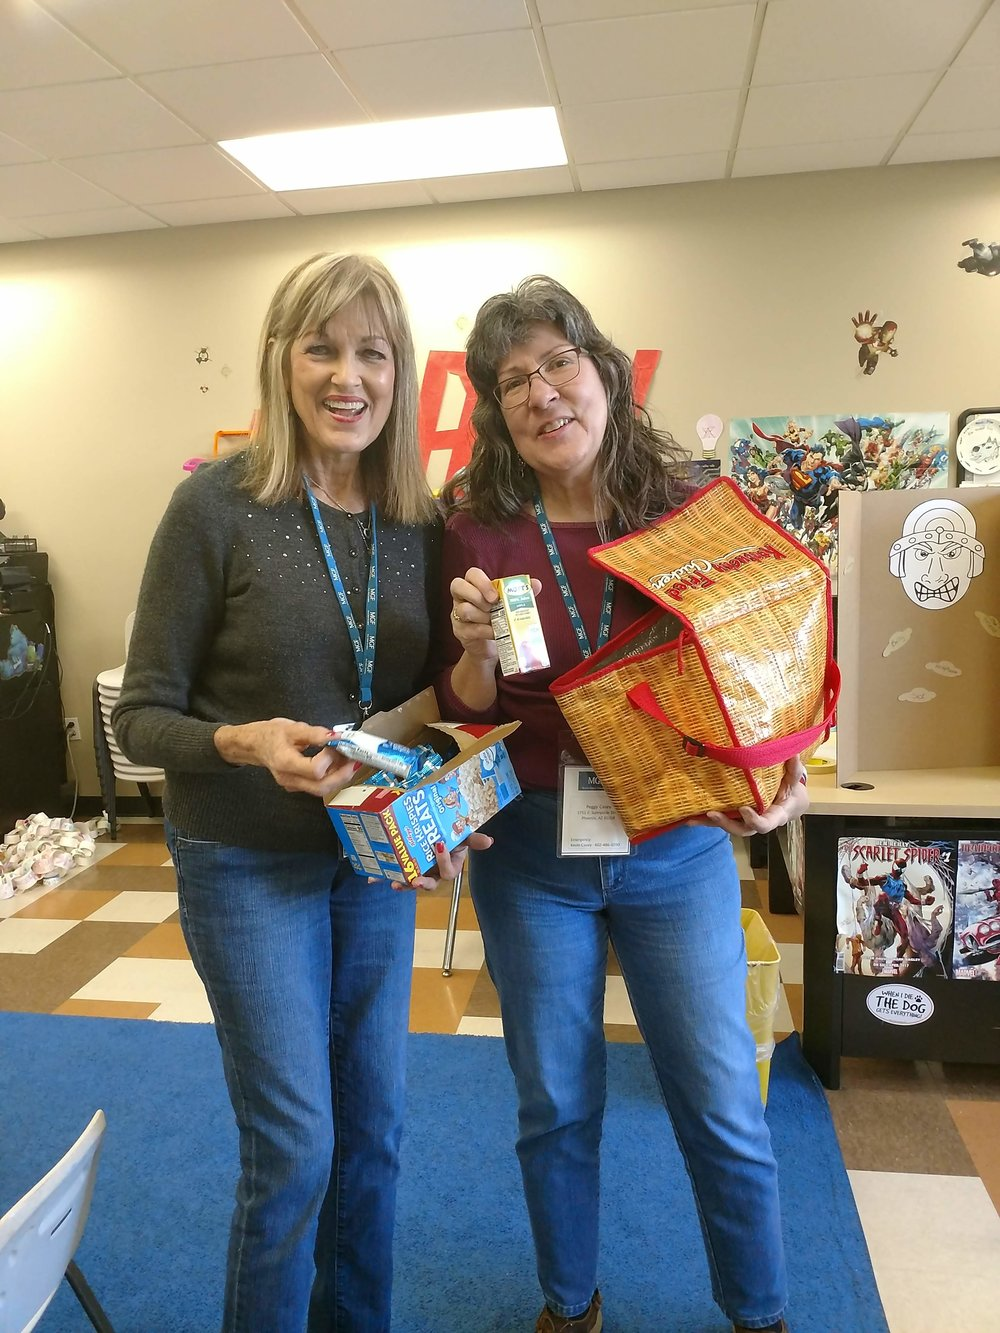 Jolyn Avants and Peggy Casey passing treats for the kids